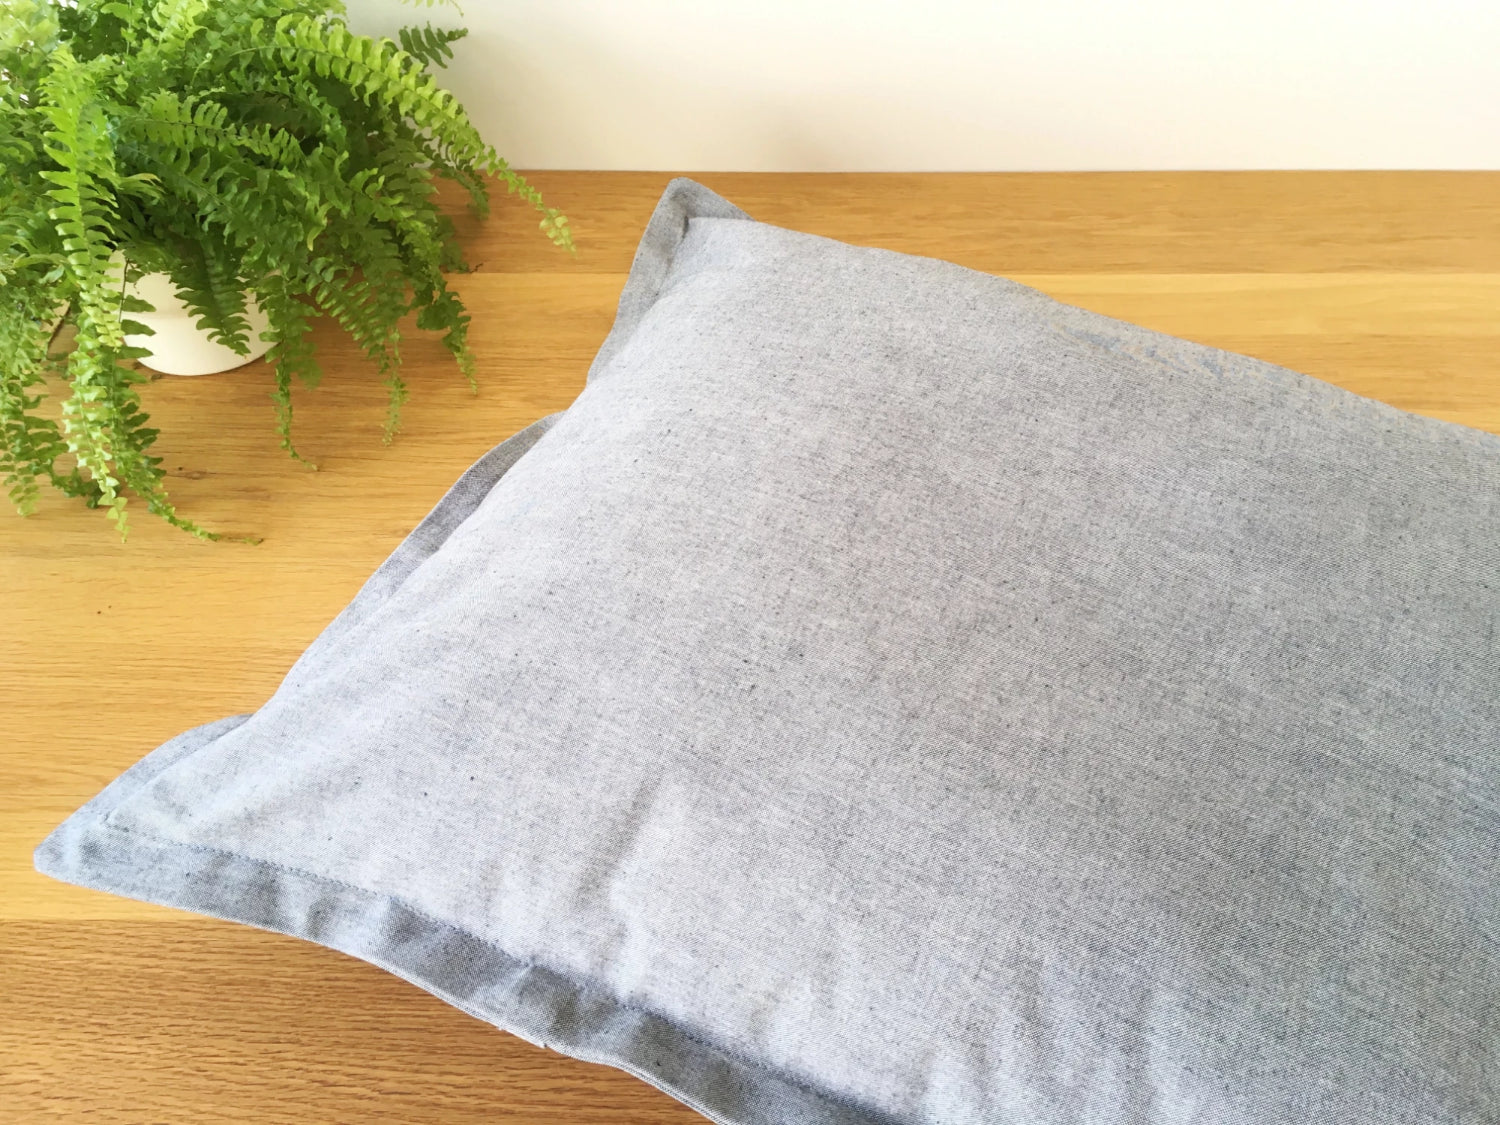 Luxury dog pillow cushion bed in organic cotton canvas fabric with recycled polyester fibre filling